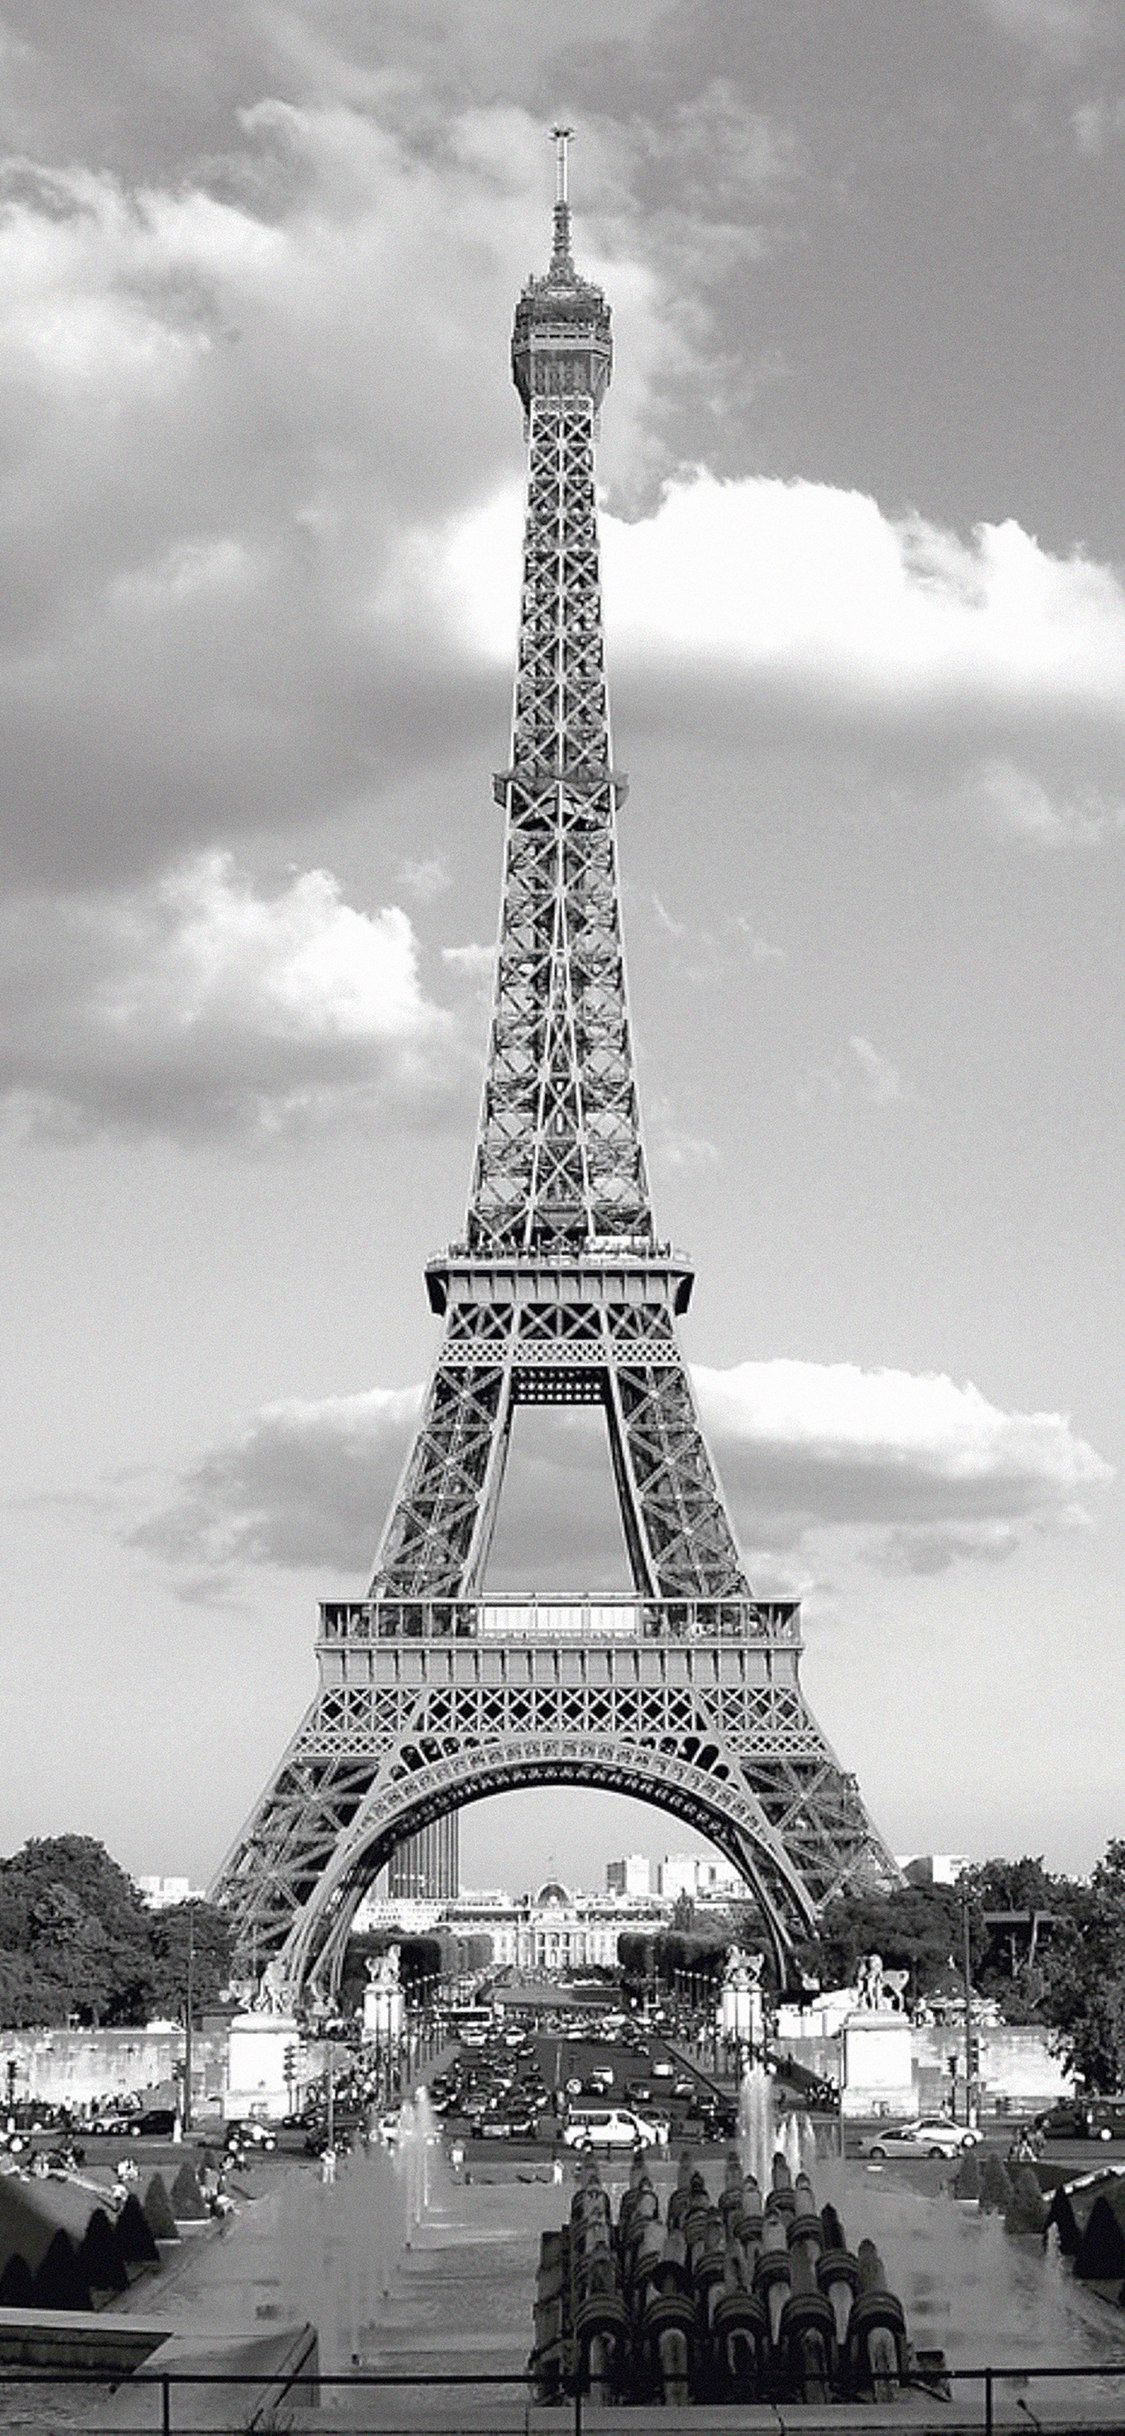 Papers Co Iphone Wallpaper Mj38 Paris With Eiffel Tower France City